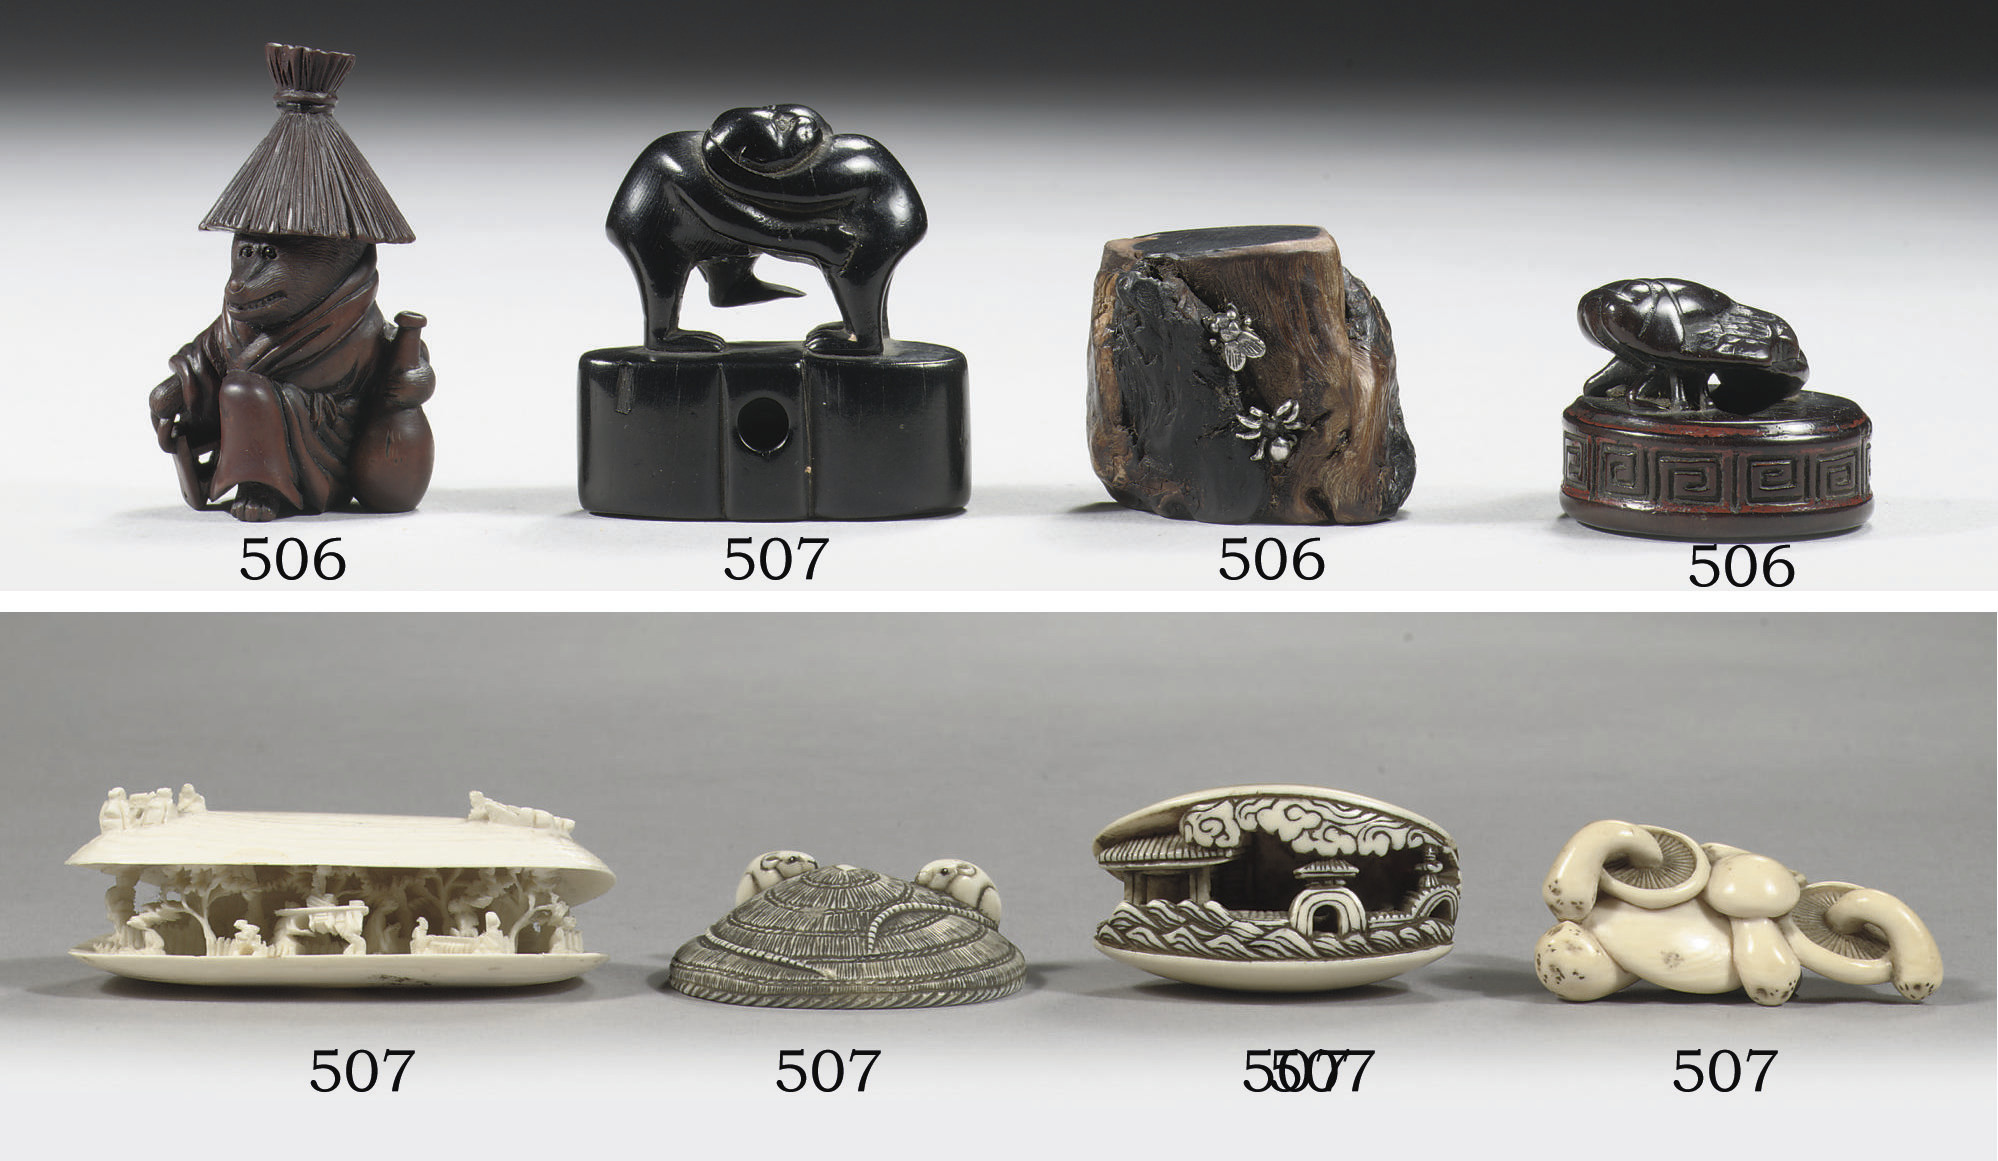 Five netsuke in different mate